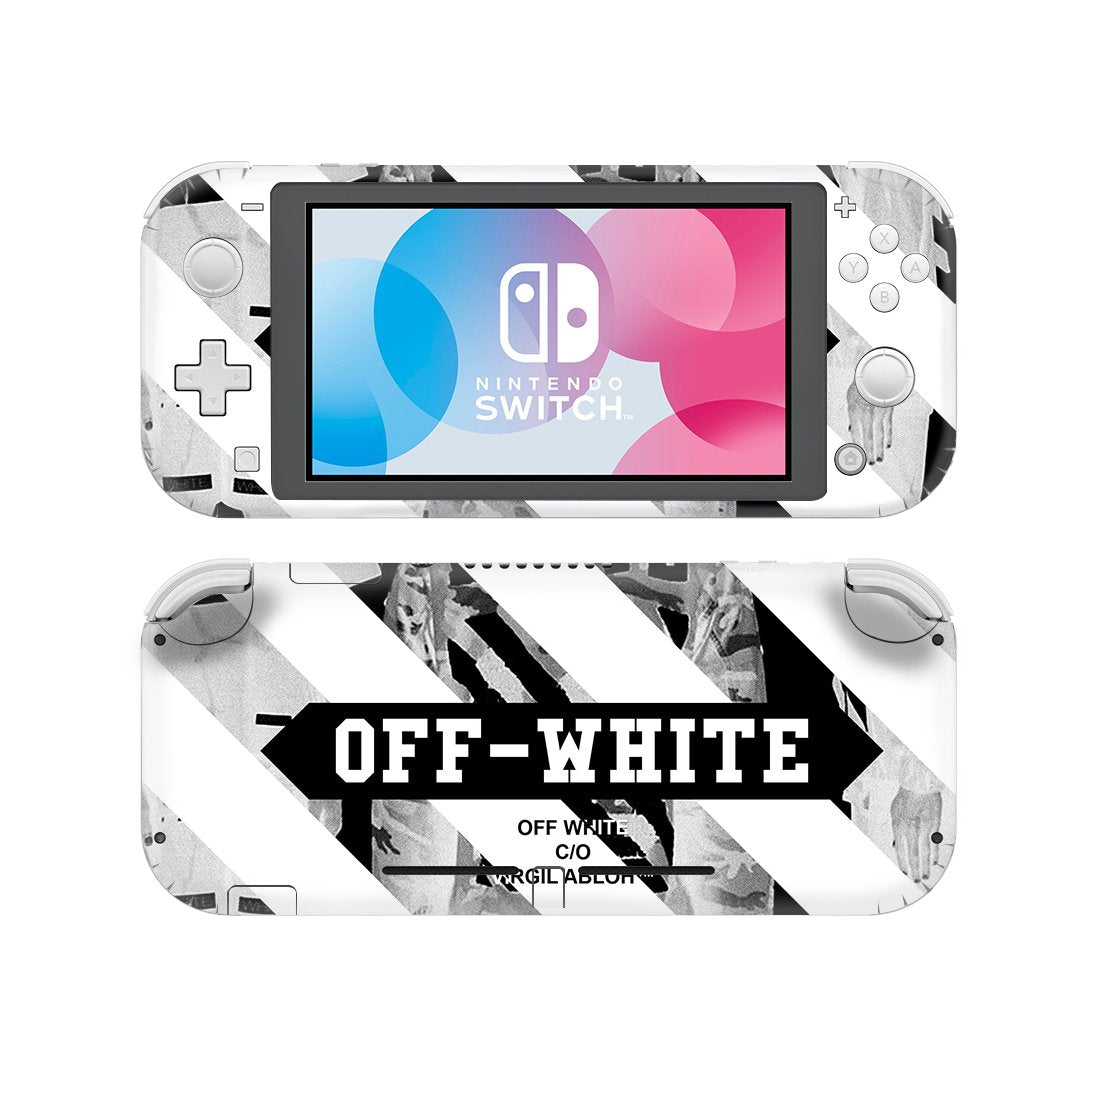 Offwhite Stripes Nintendo Switch Lite Skin Sticker Wrap